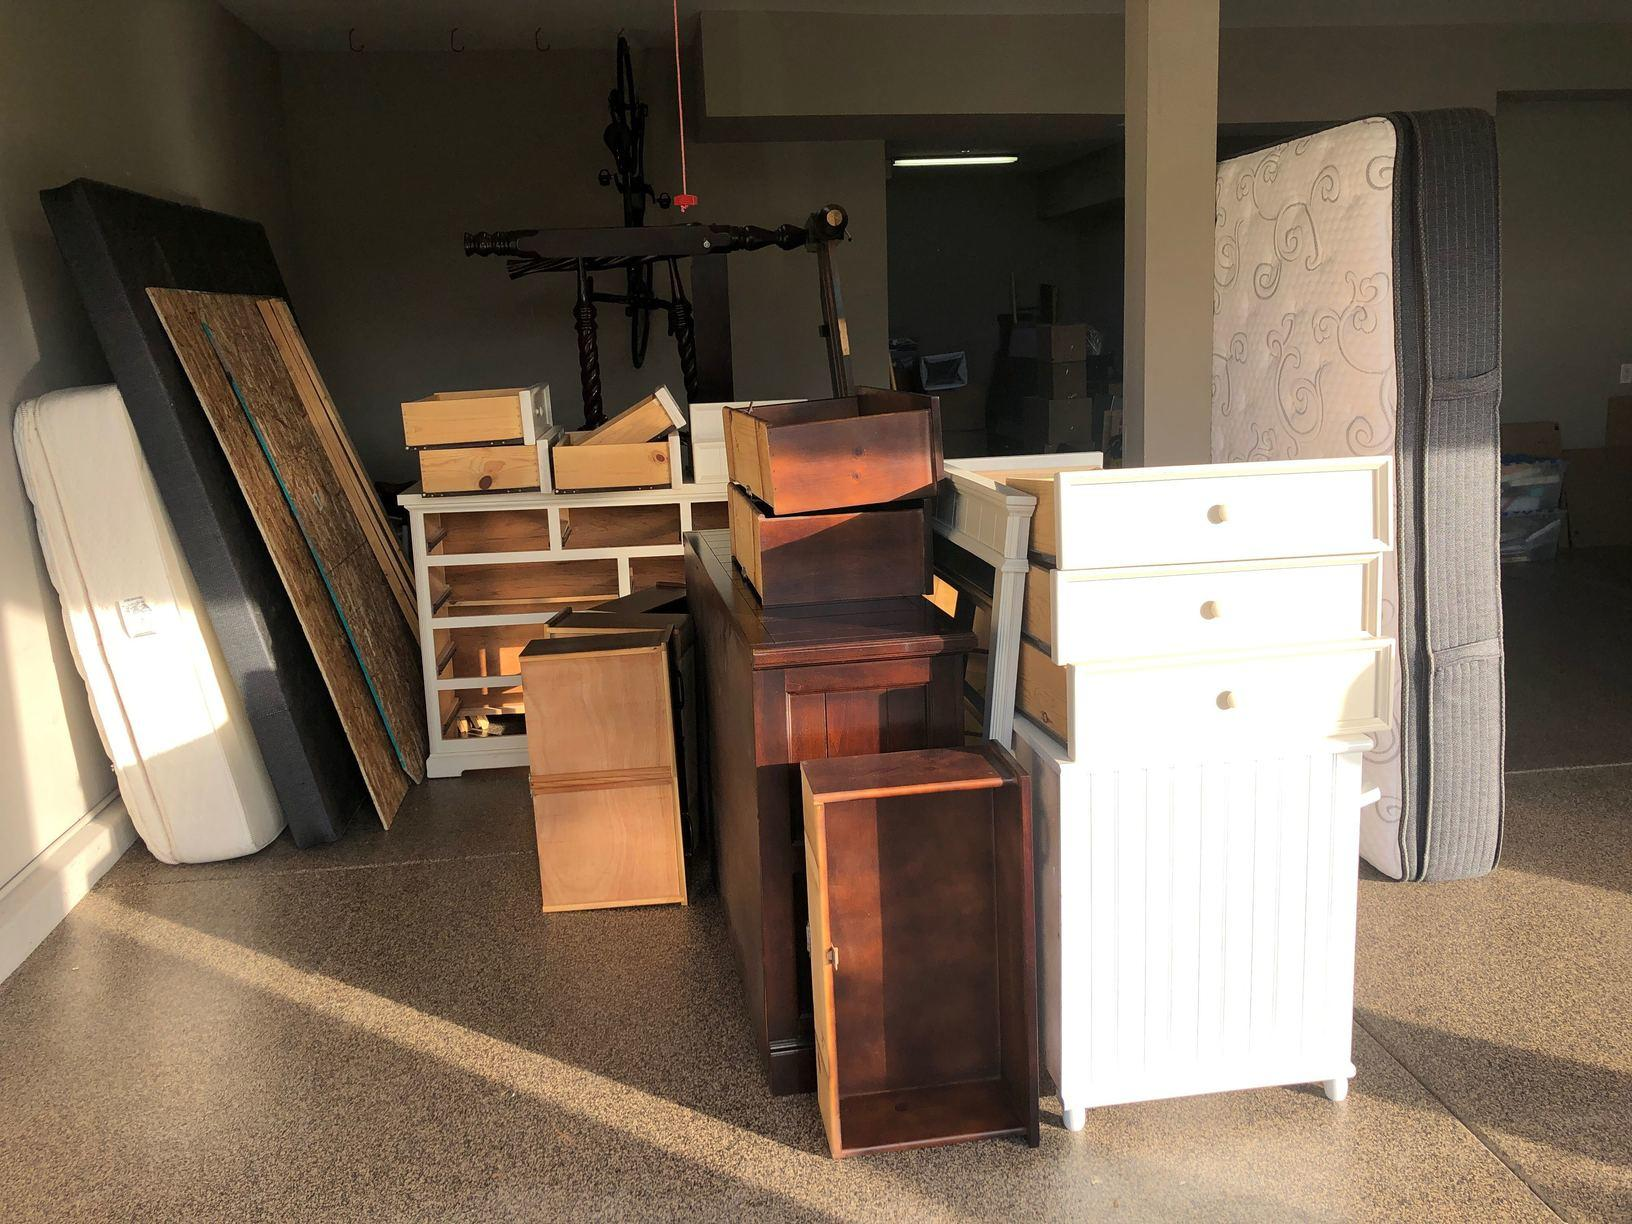 Garage Clean Out in Yorba Linda, CA - Before Photo